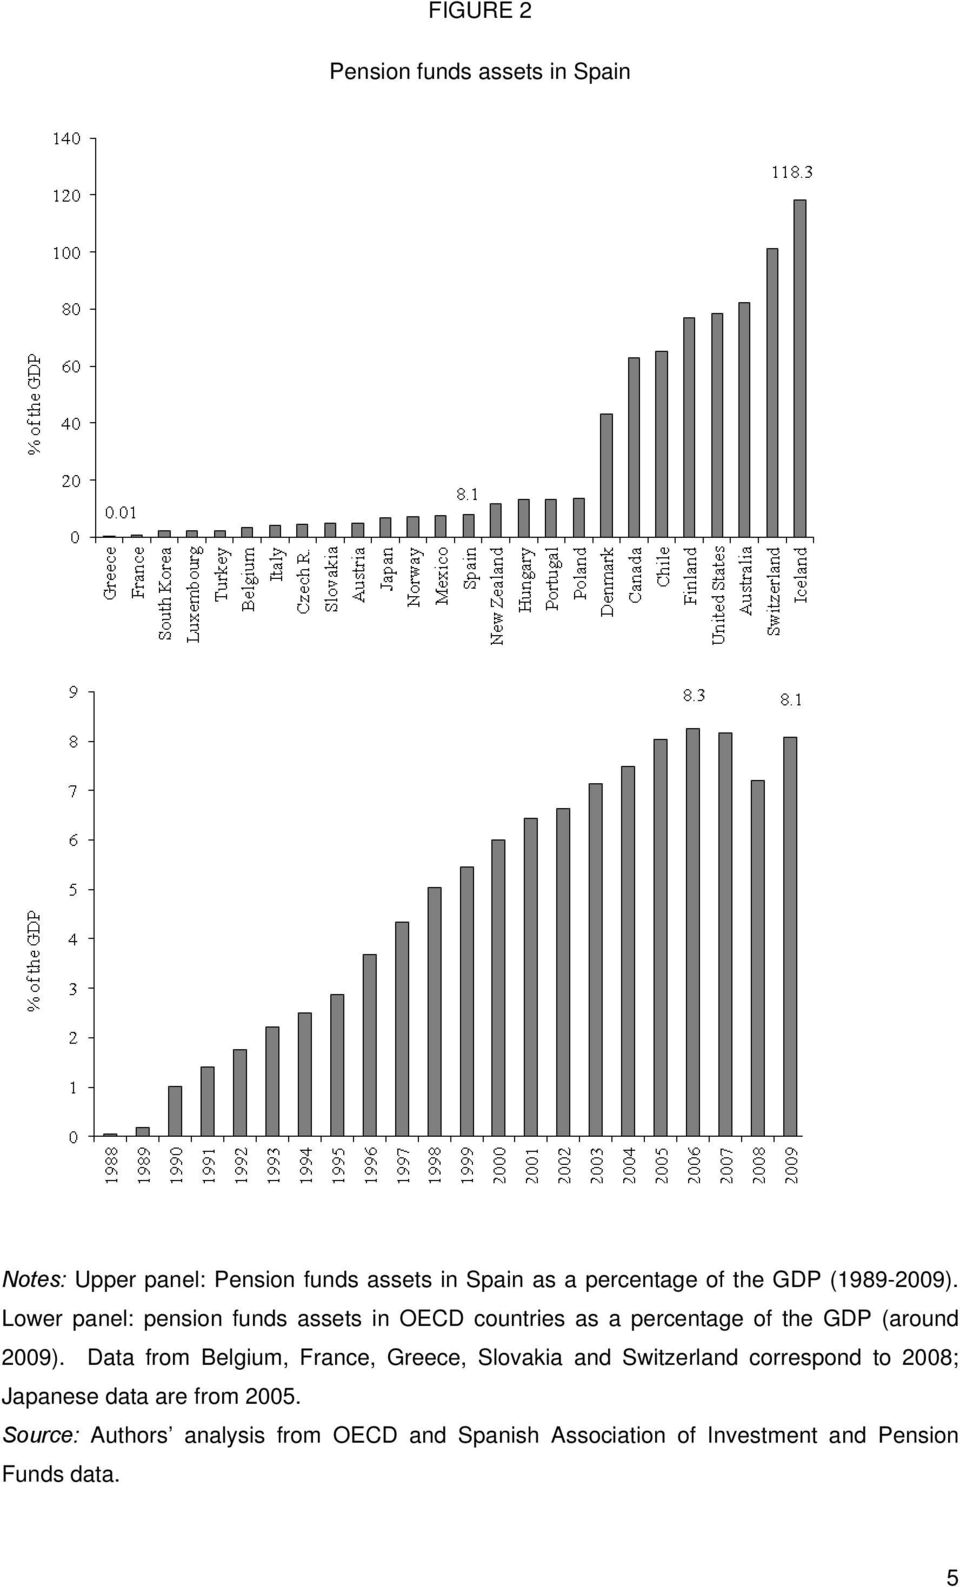 Lower panel: pension funds assets in OECD countries as a percentage of the GDP (around 2009).